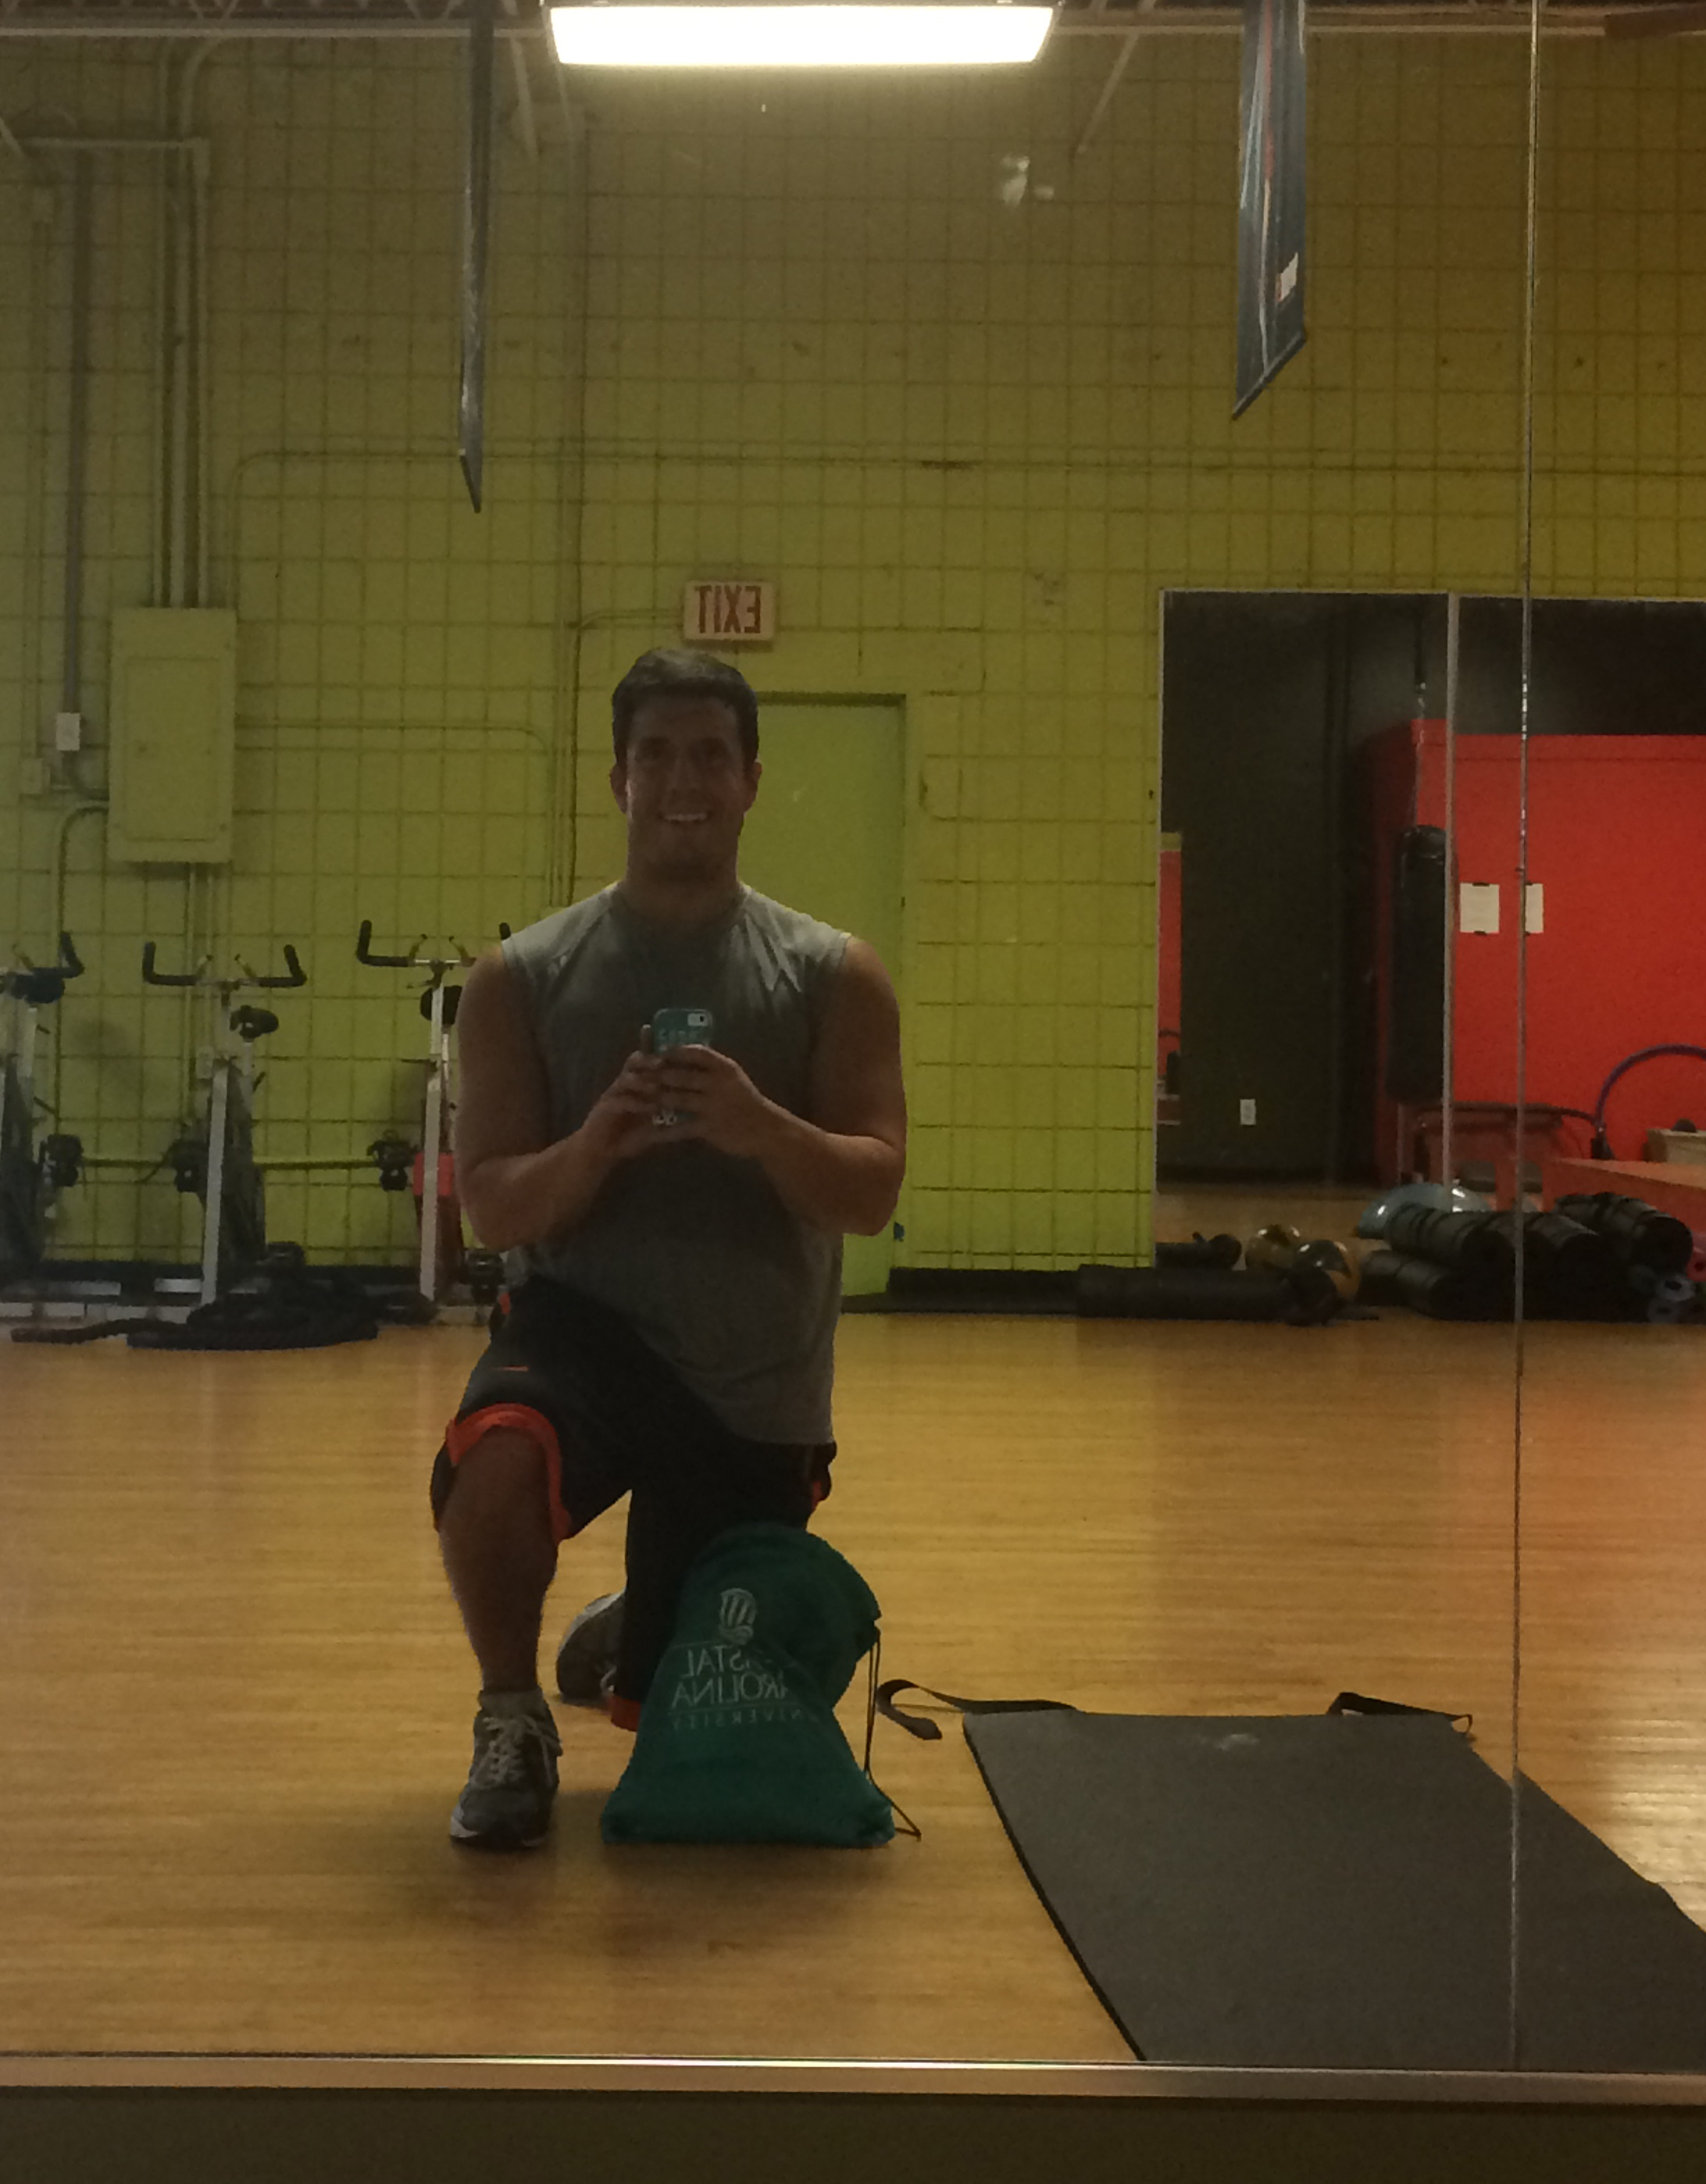 This is me taking a selfie inside the old school facilities of Gold's Gym this morning.